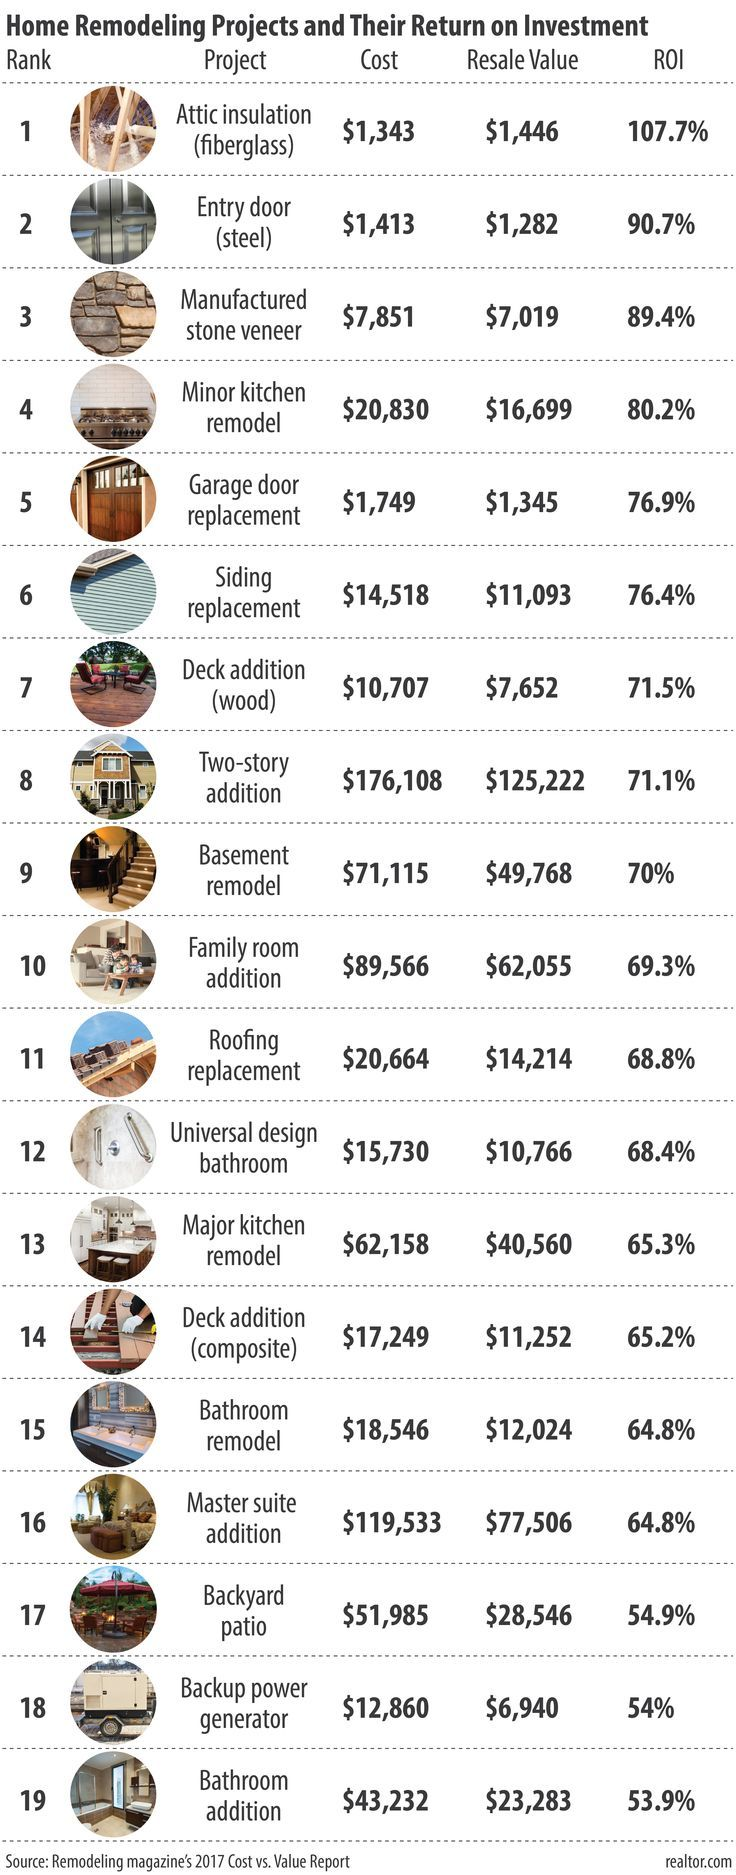 The Renovations That Will Pay Off the Most for Your Home in 2017